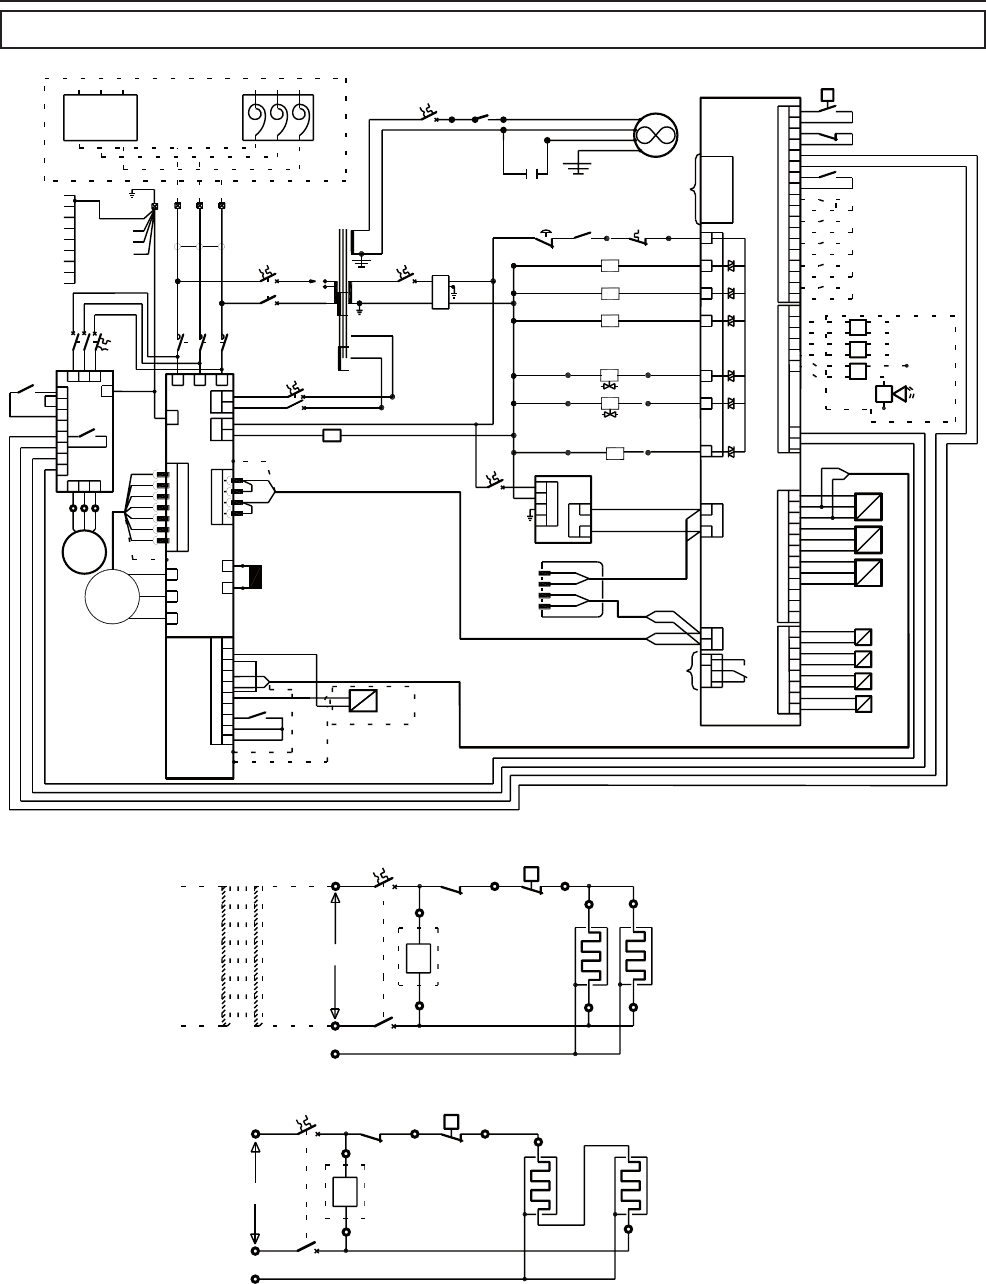 hight resolution of ingersoll rand wiring schematic wiring diagram for you ingersoll rand air compressor wiring diagram collection wiring